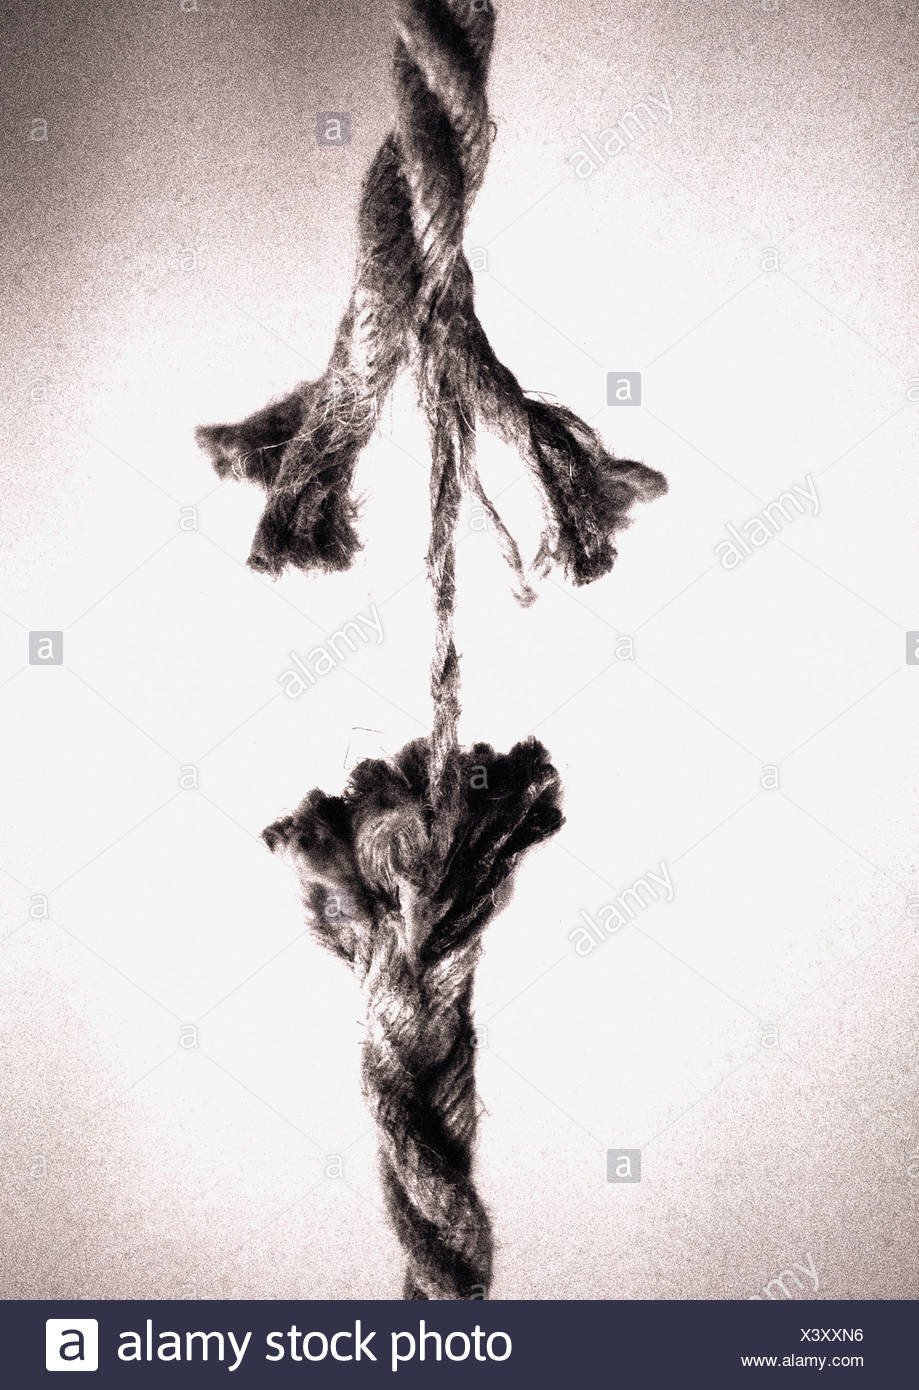 Frayed rope about to break - Stock Image